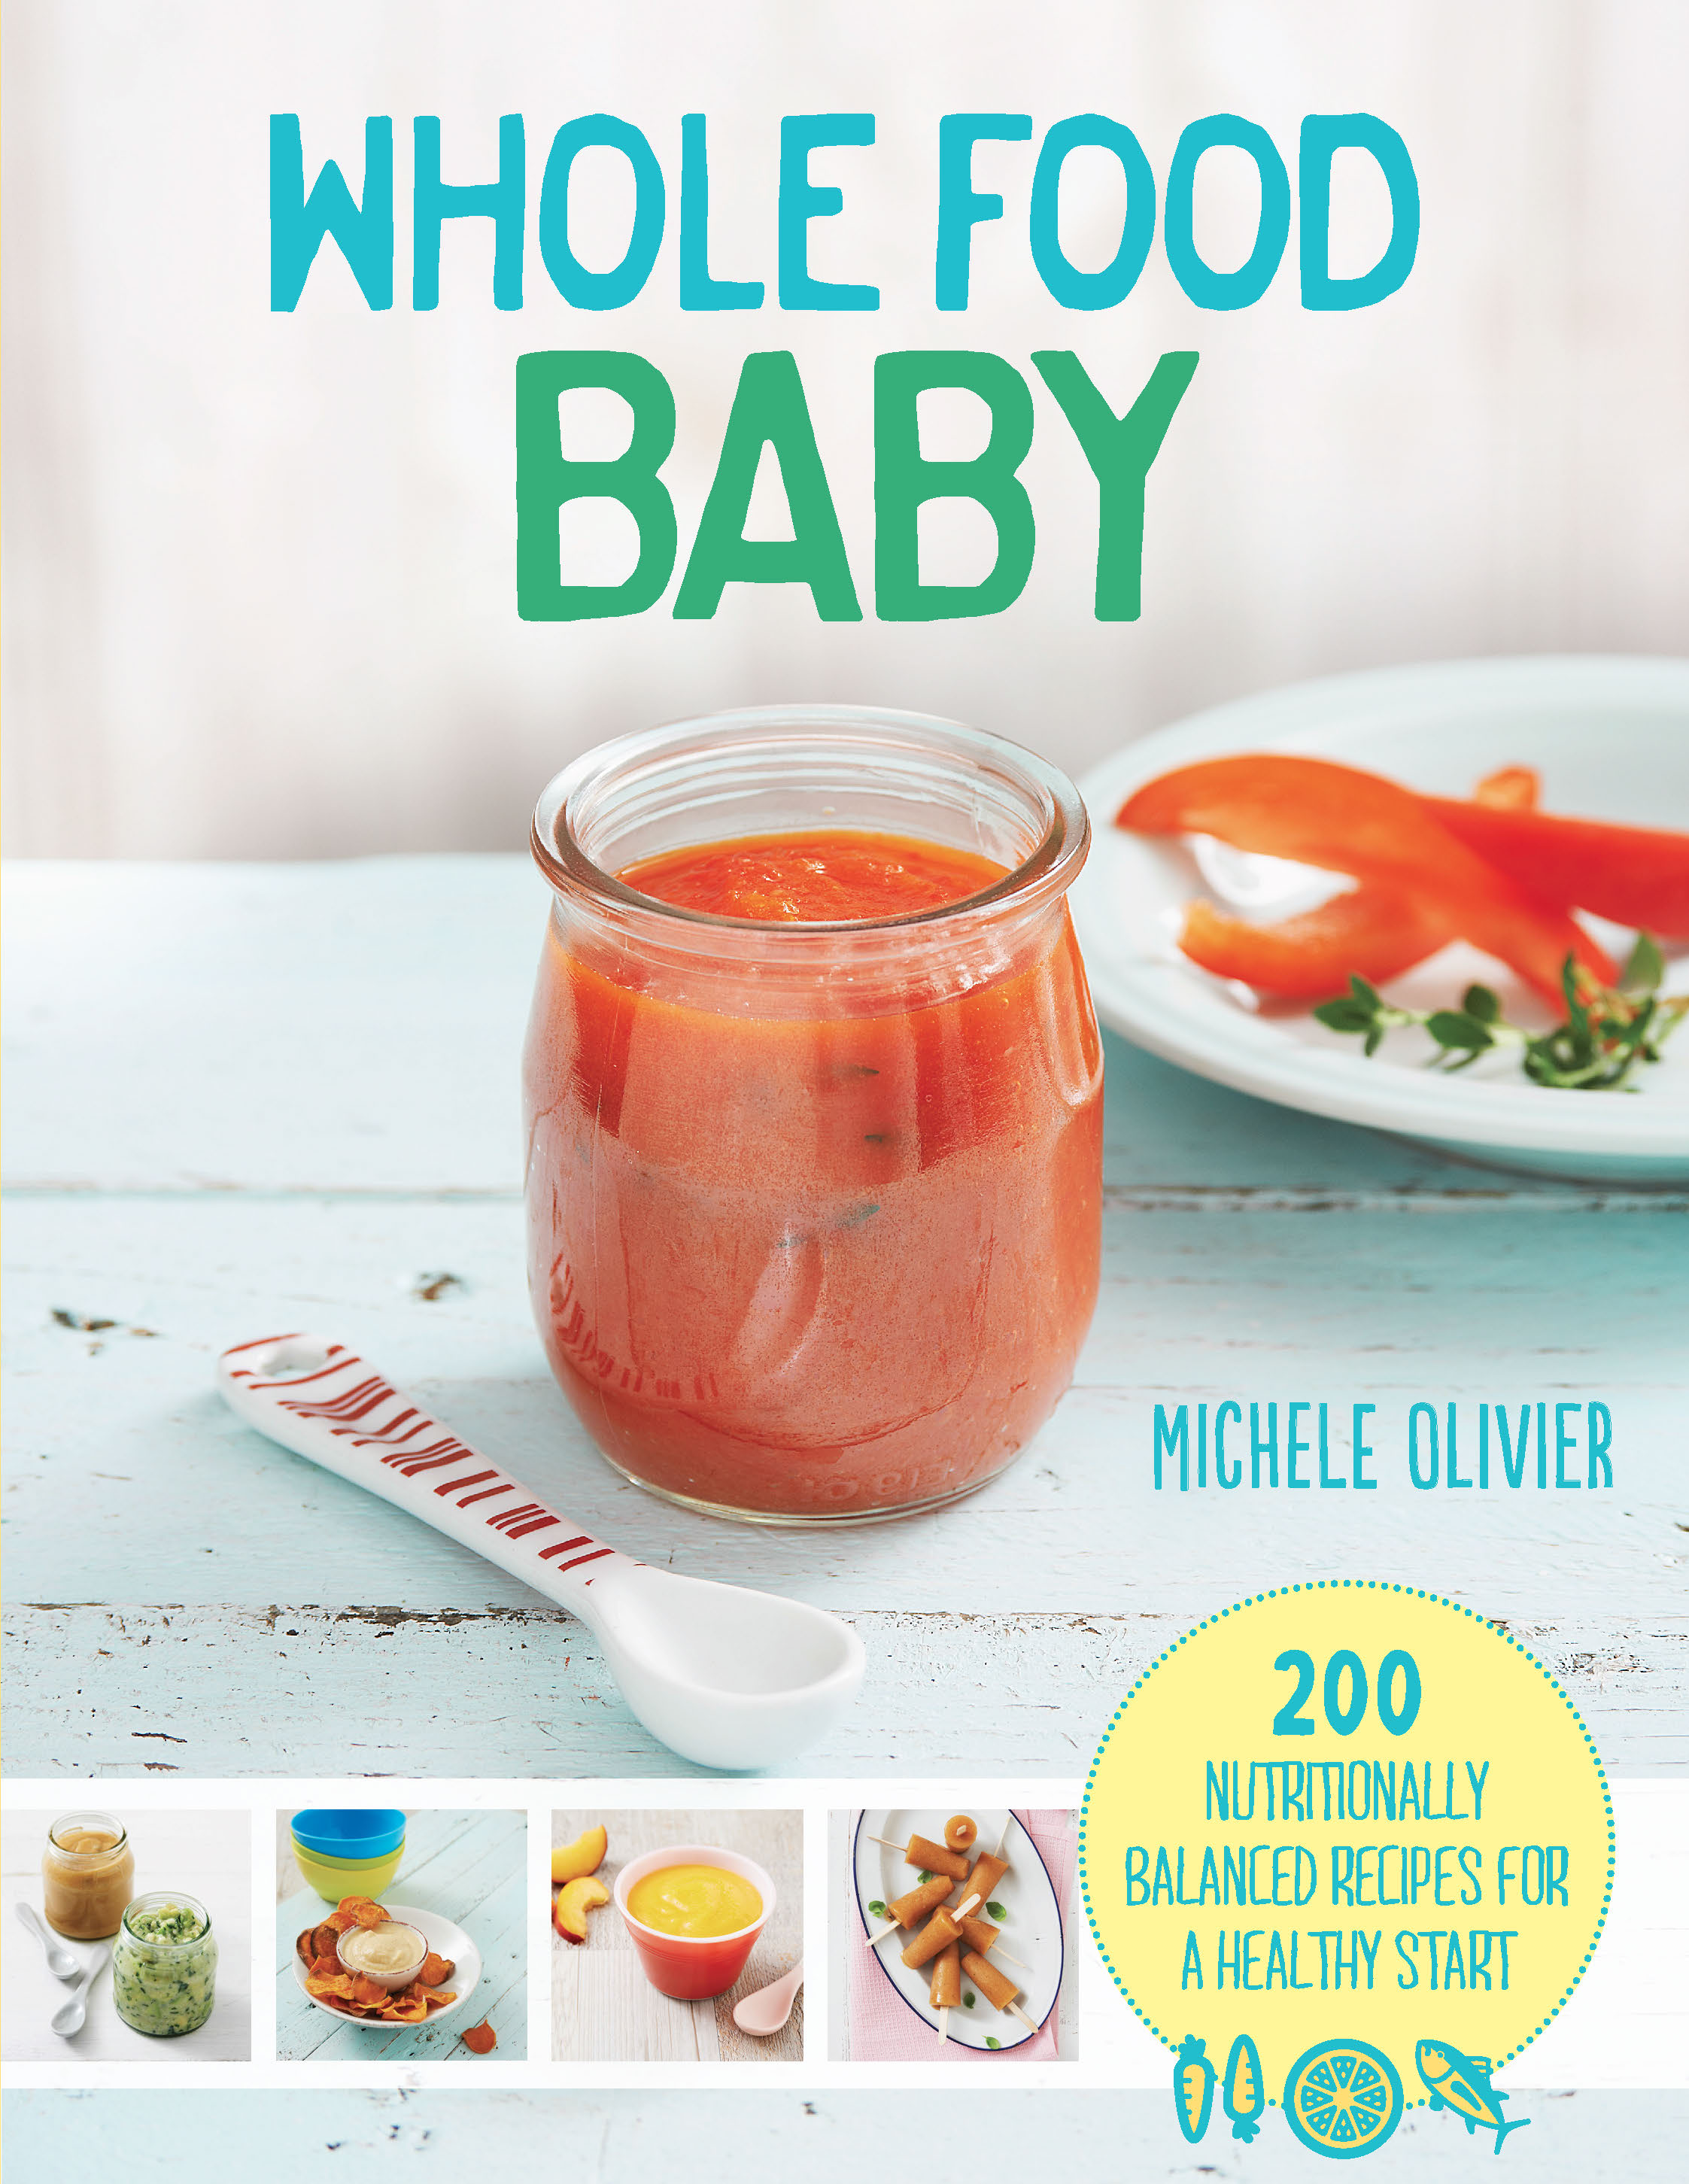 Whole Food Baby Michele Olivier